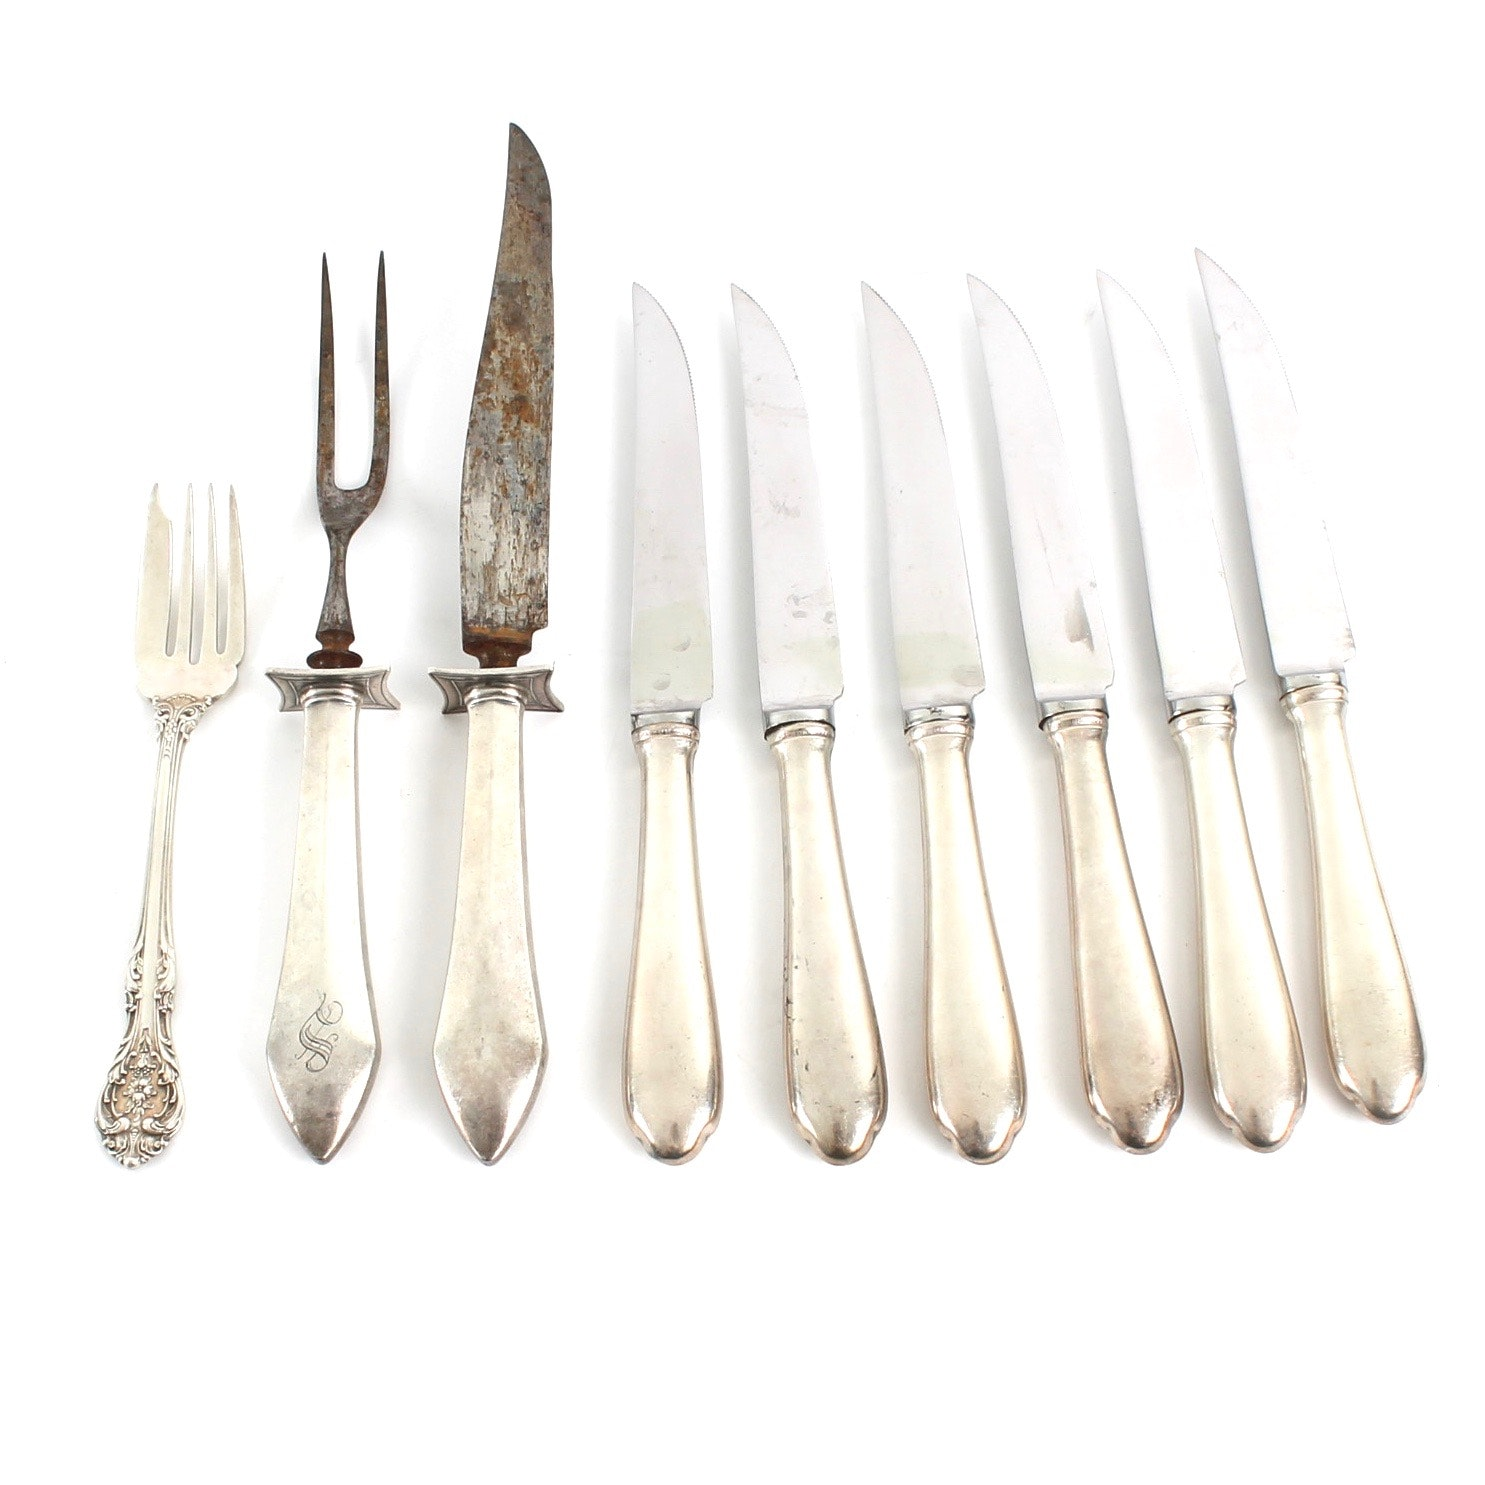 Assorted Sterling Silver Flatware Featuring Gorham